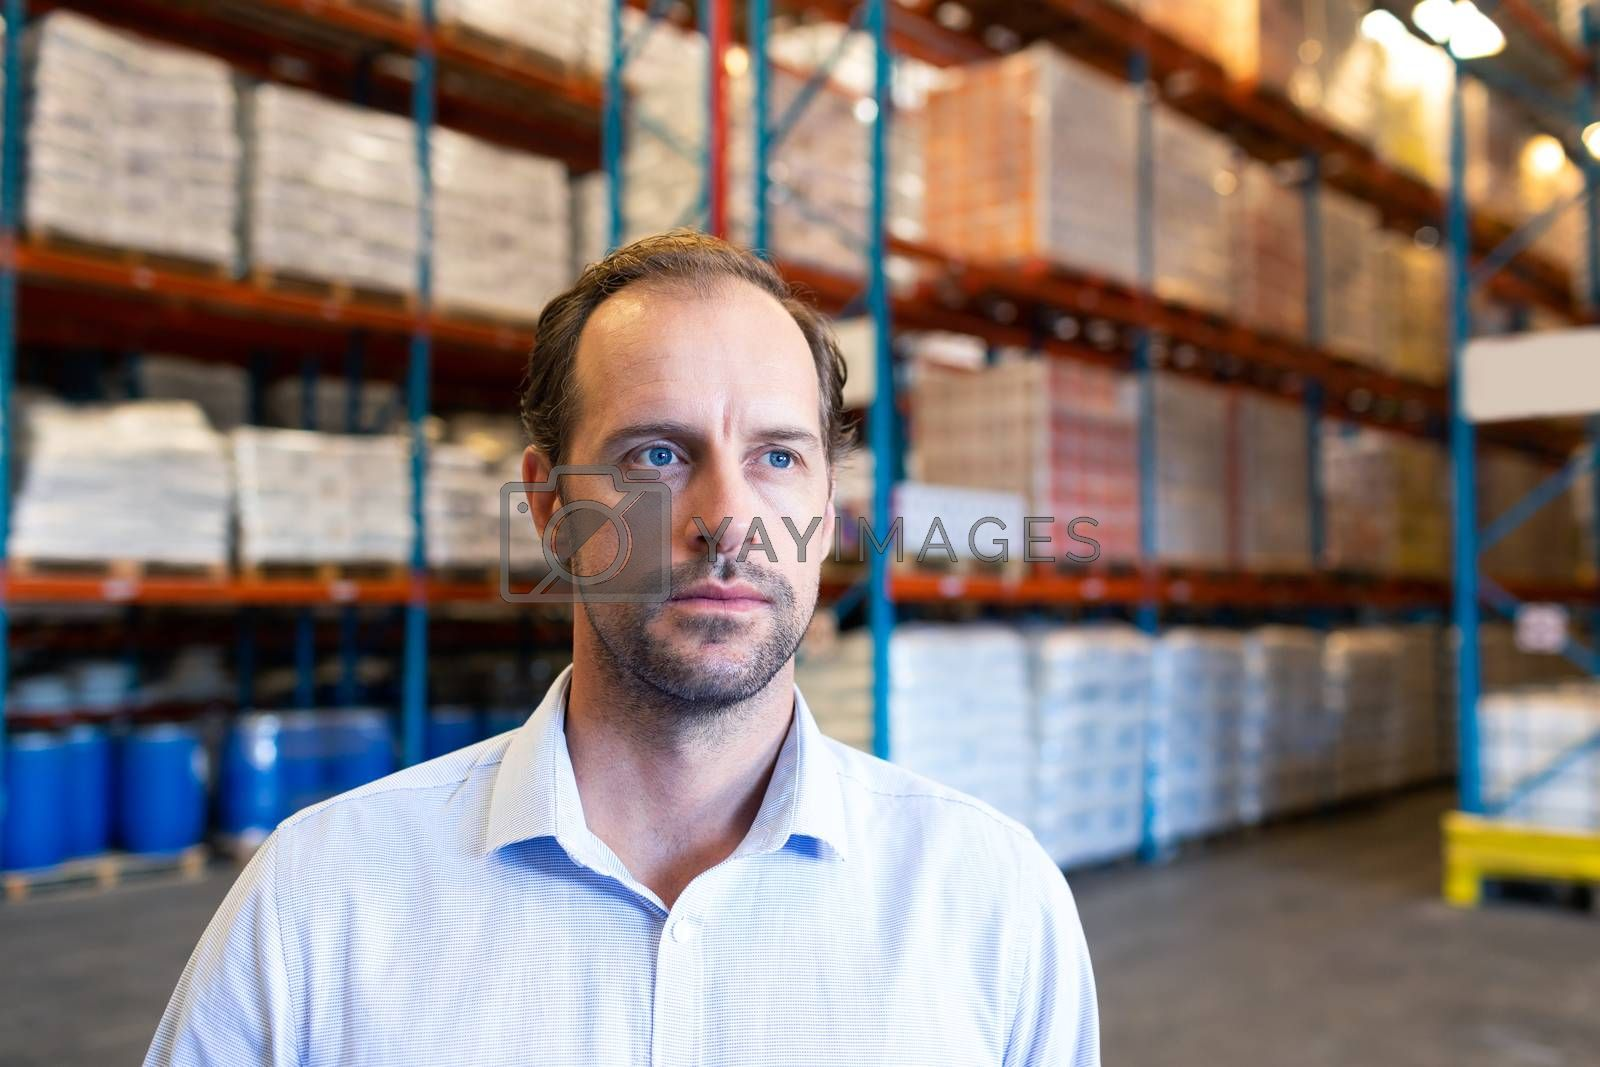 Portrait close-up of handsome mature Caucasian male supervisor looking away in warehouse. This is a freight transportation and distribution warehouse. Industrial and industrial workers concept